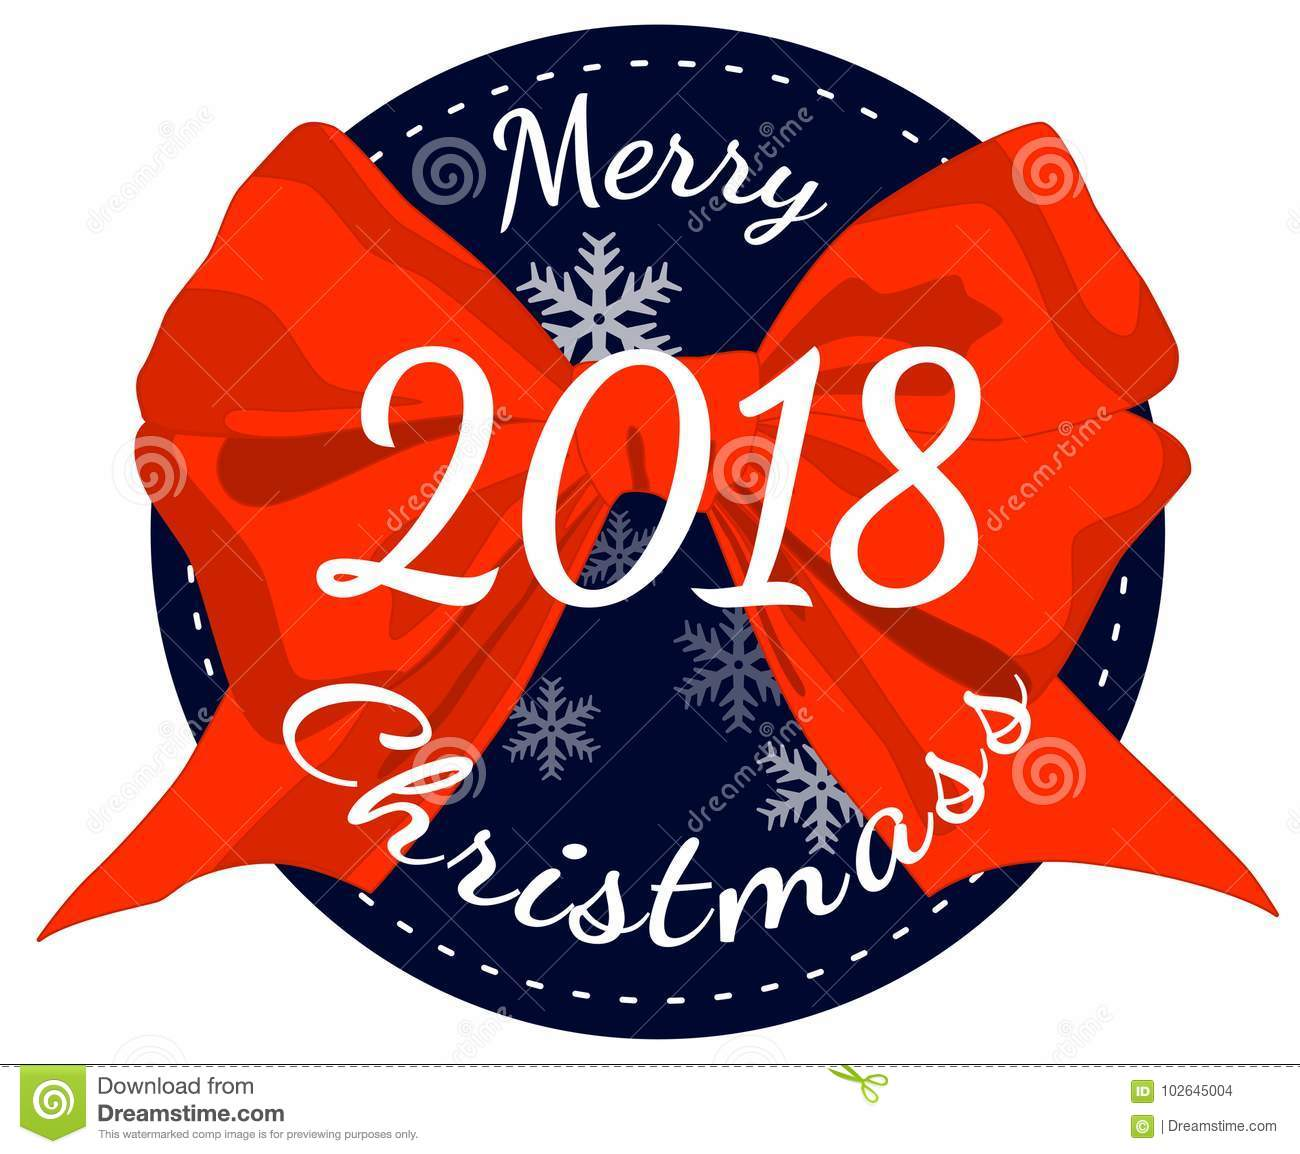 Merry Christmas Poster 2018.Merry Christmas 2018 Poster With Red Ribbon Bow Isolated On